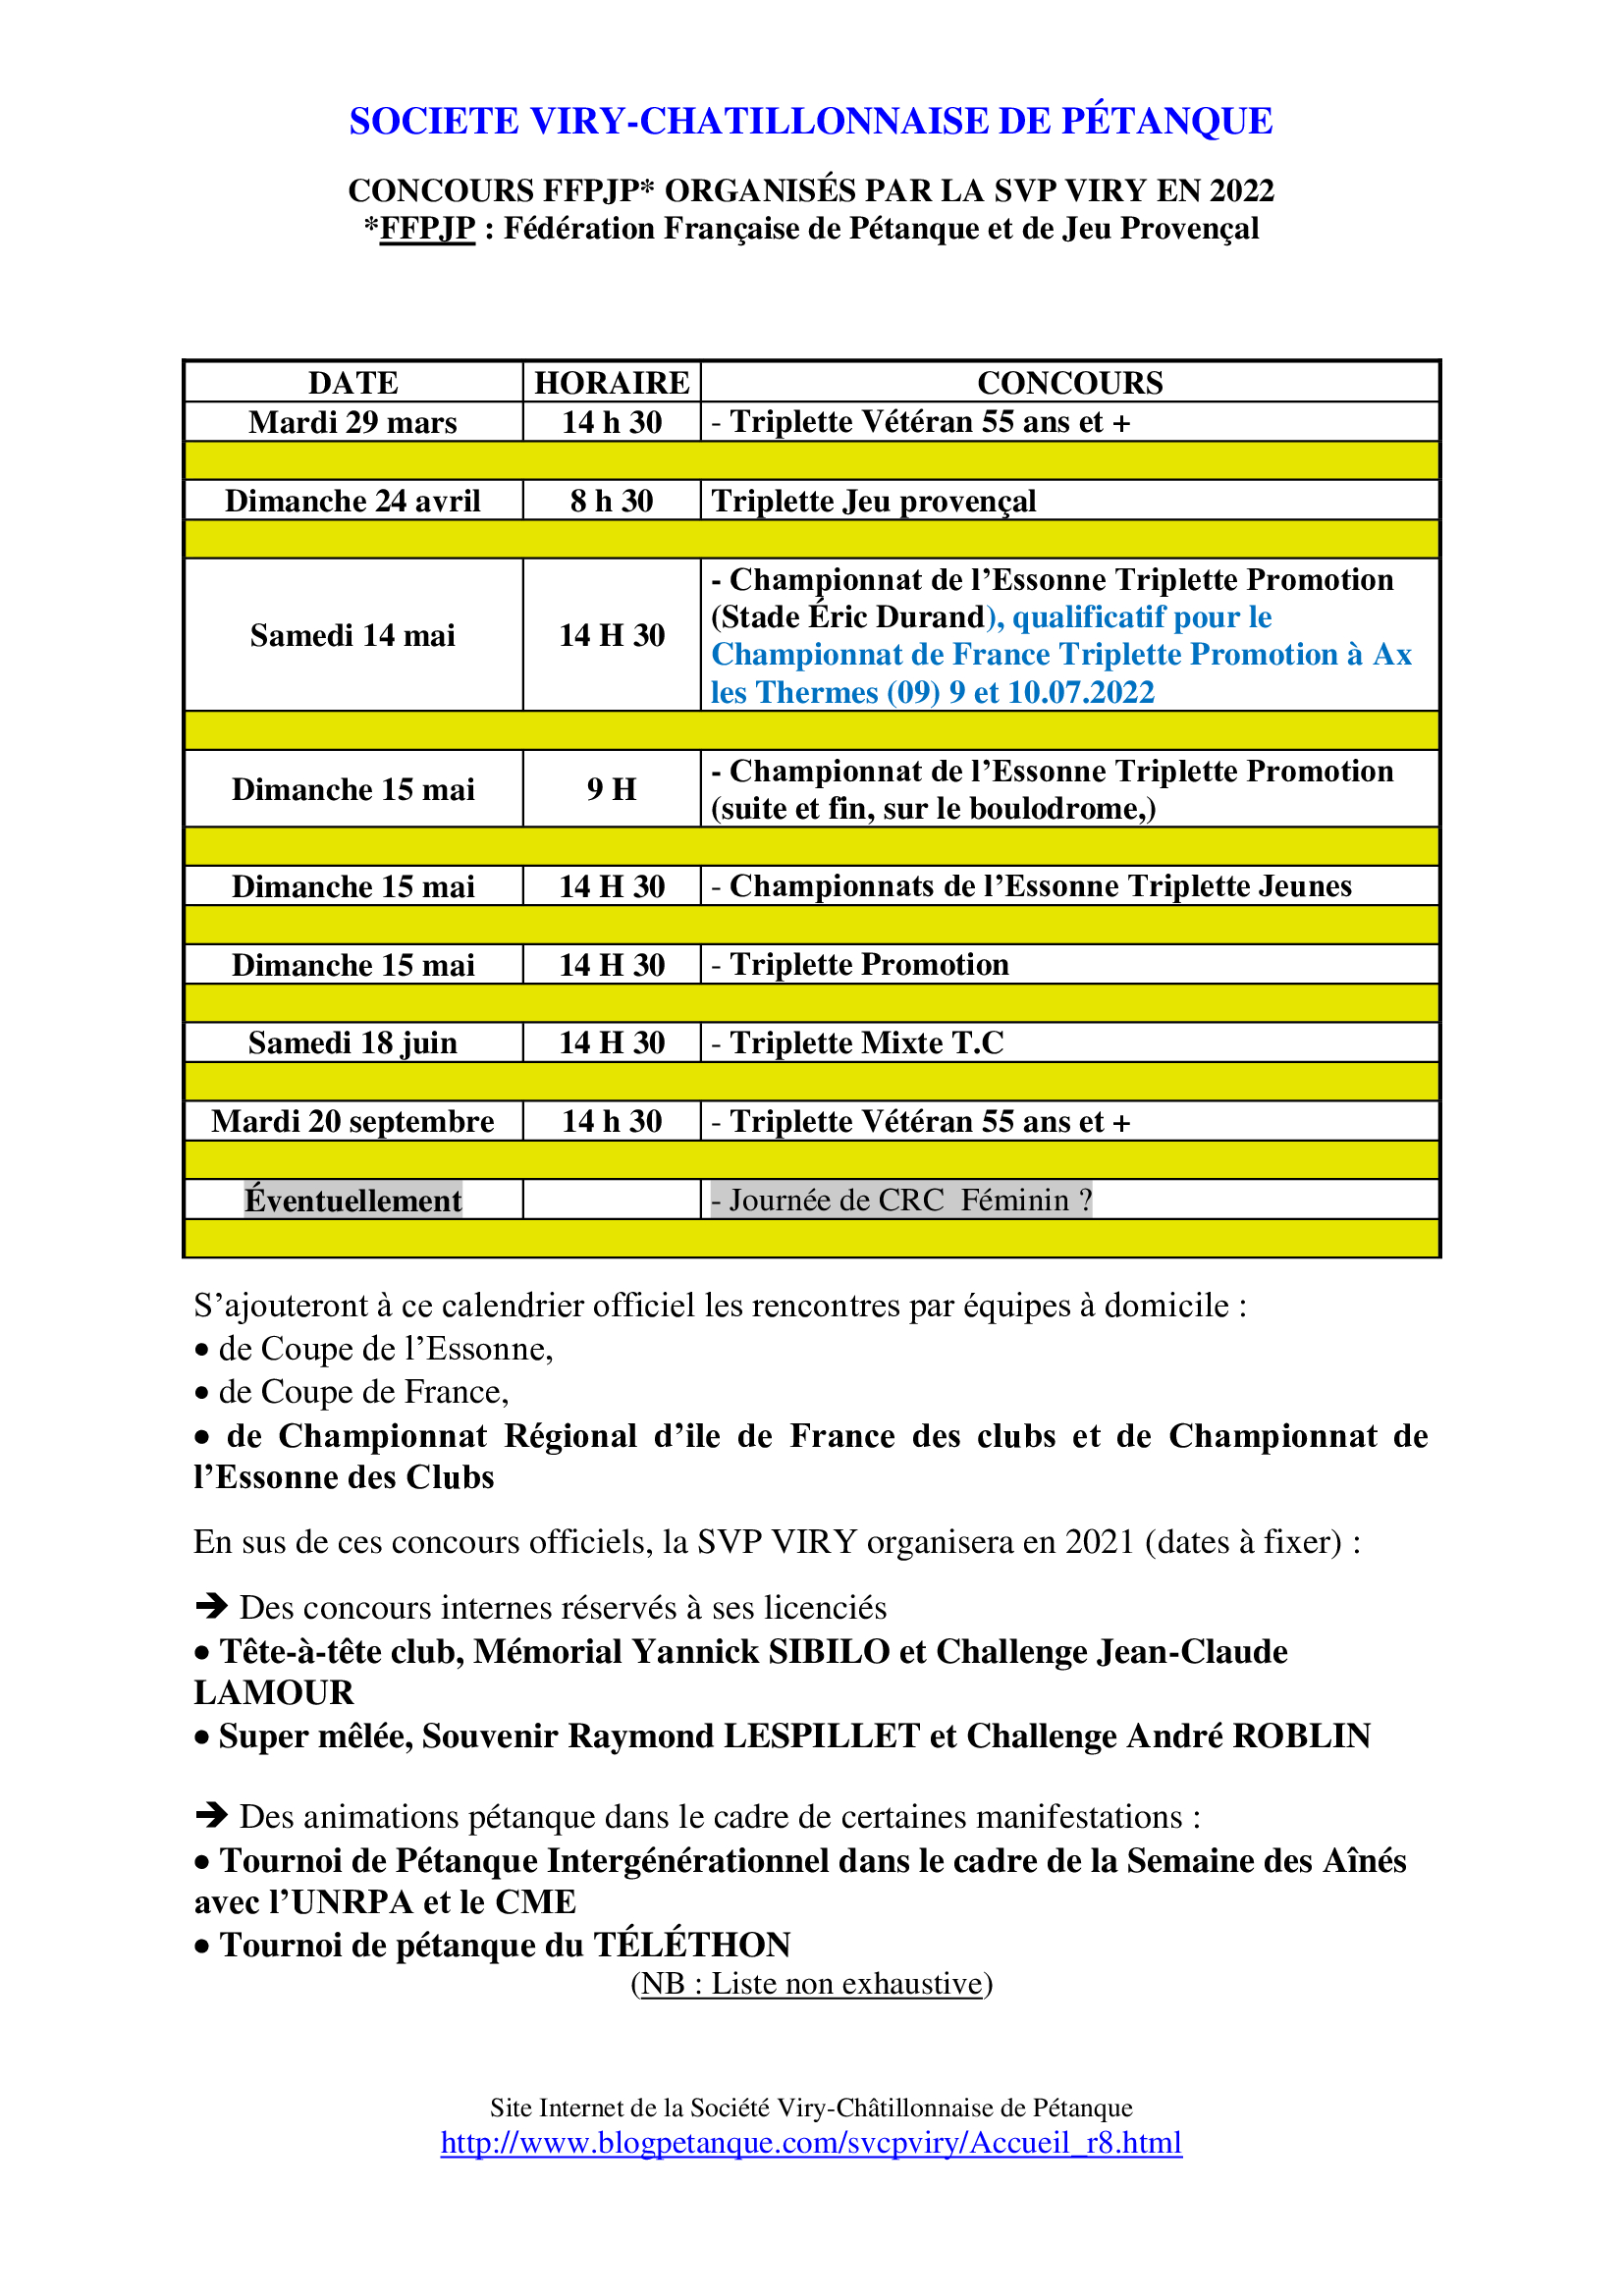 Concours SVCP 2019